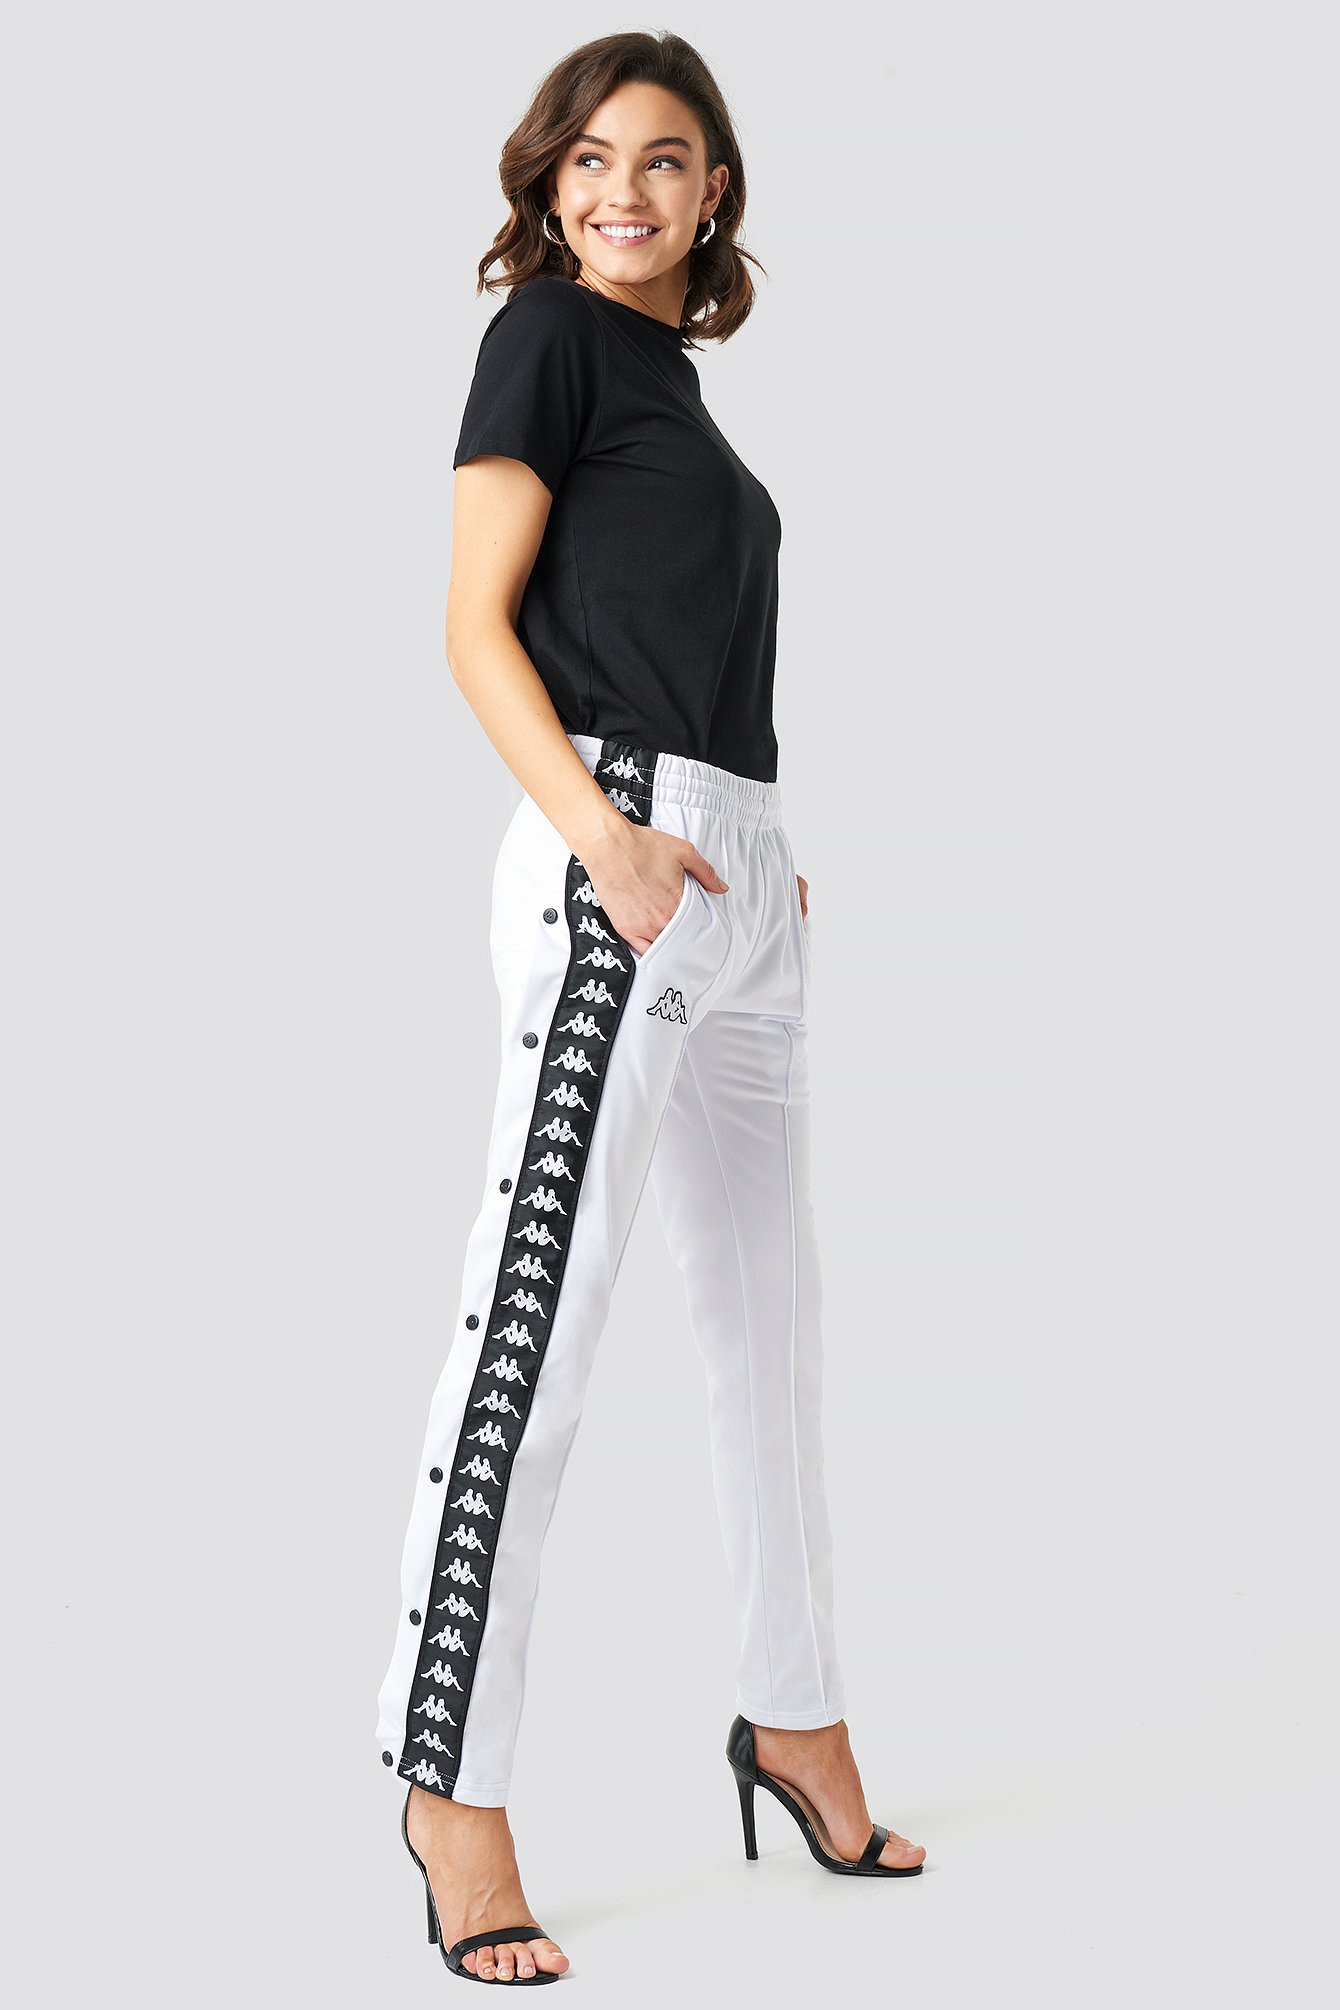 kappa -  Astoria Slim Pants - White